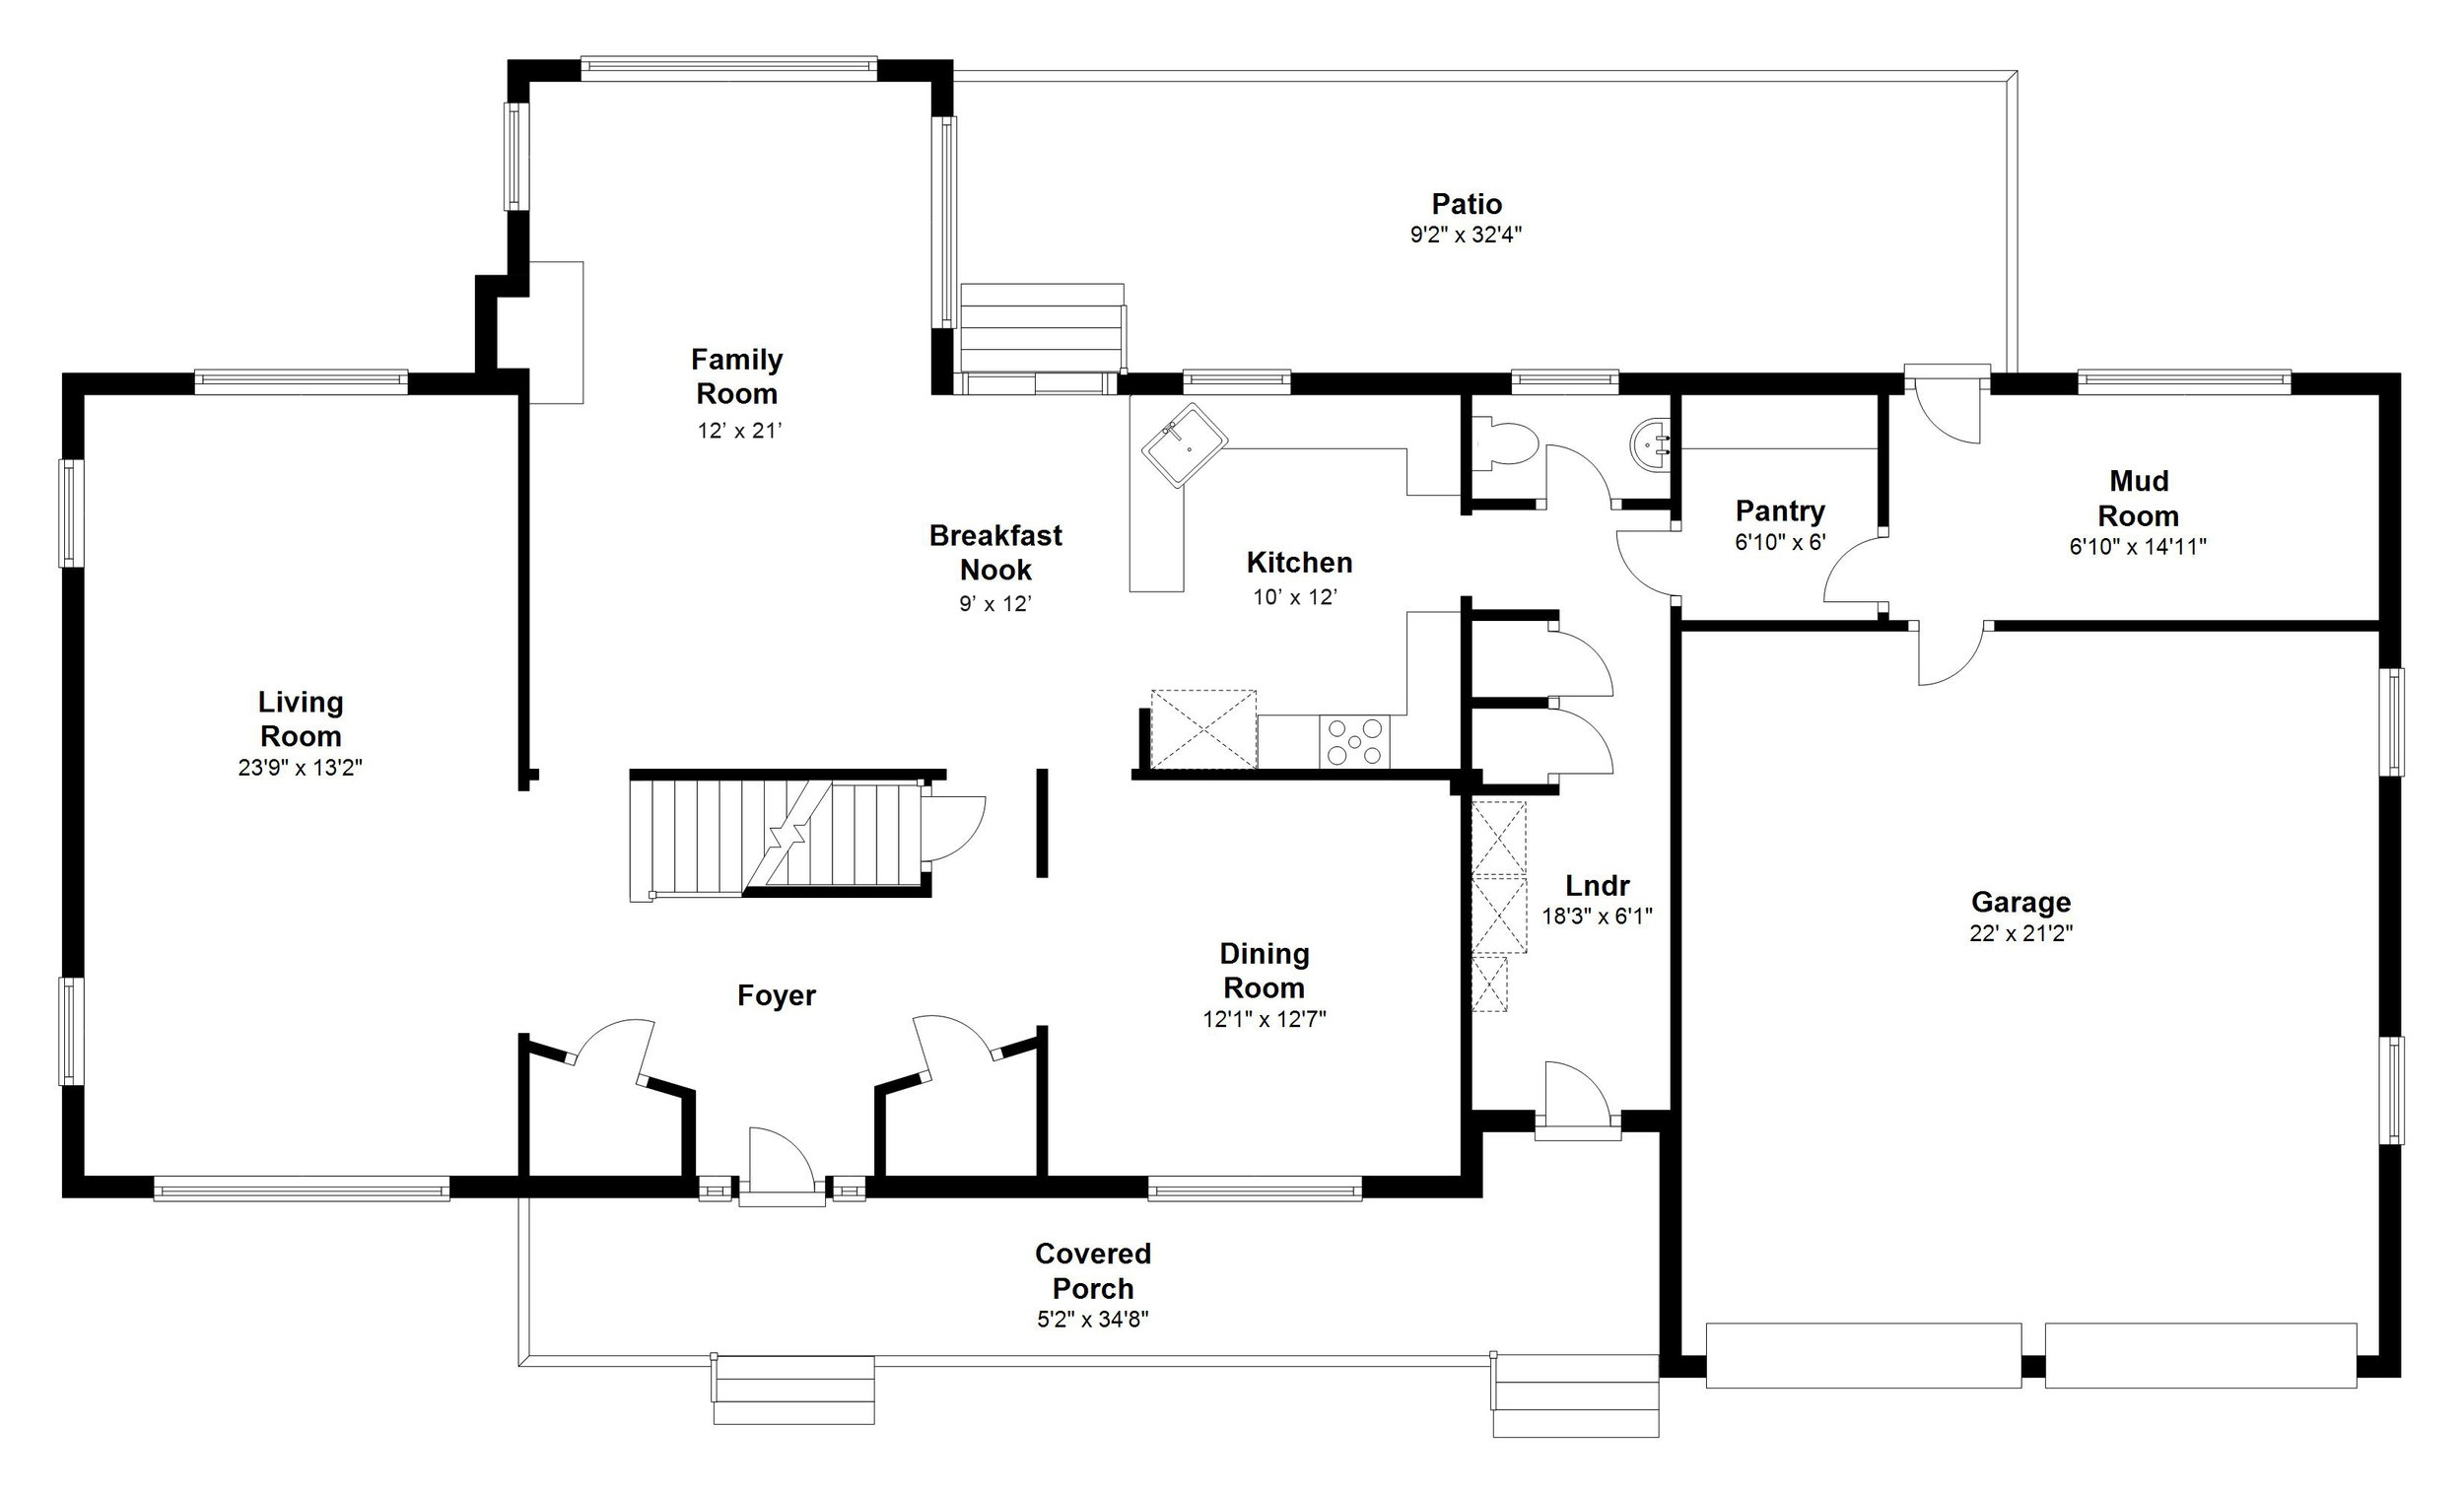 sample-floorplan-main.jpg